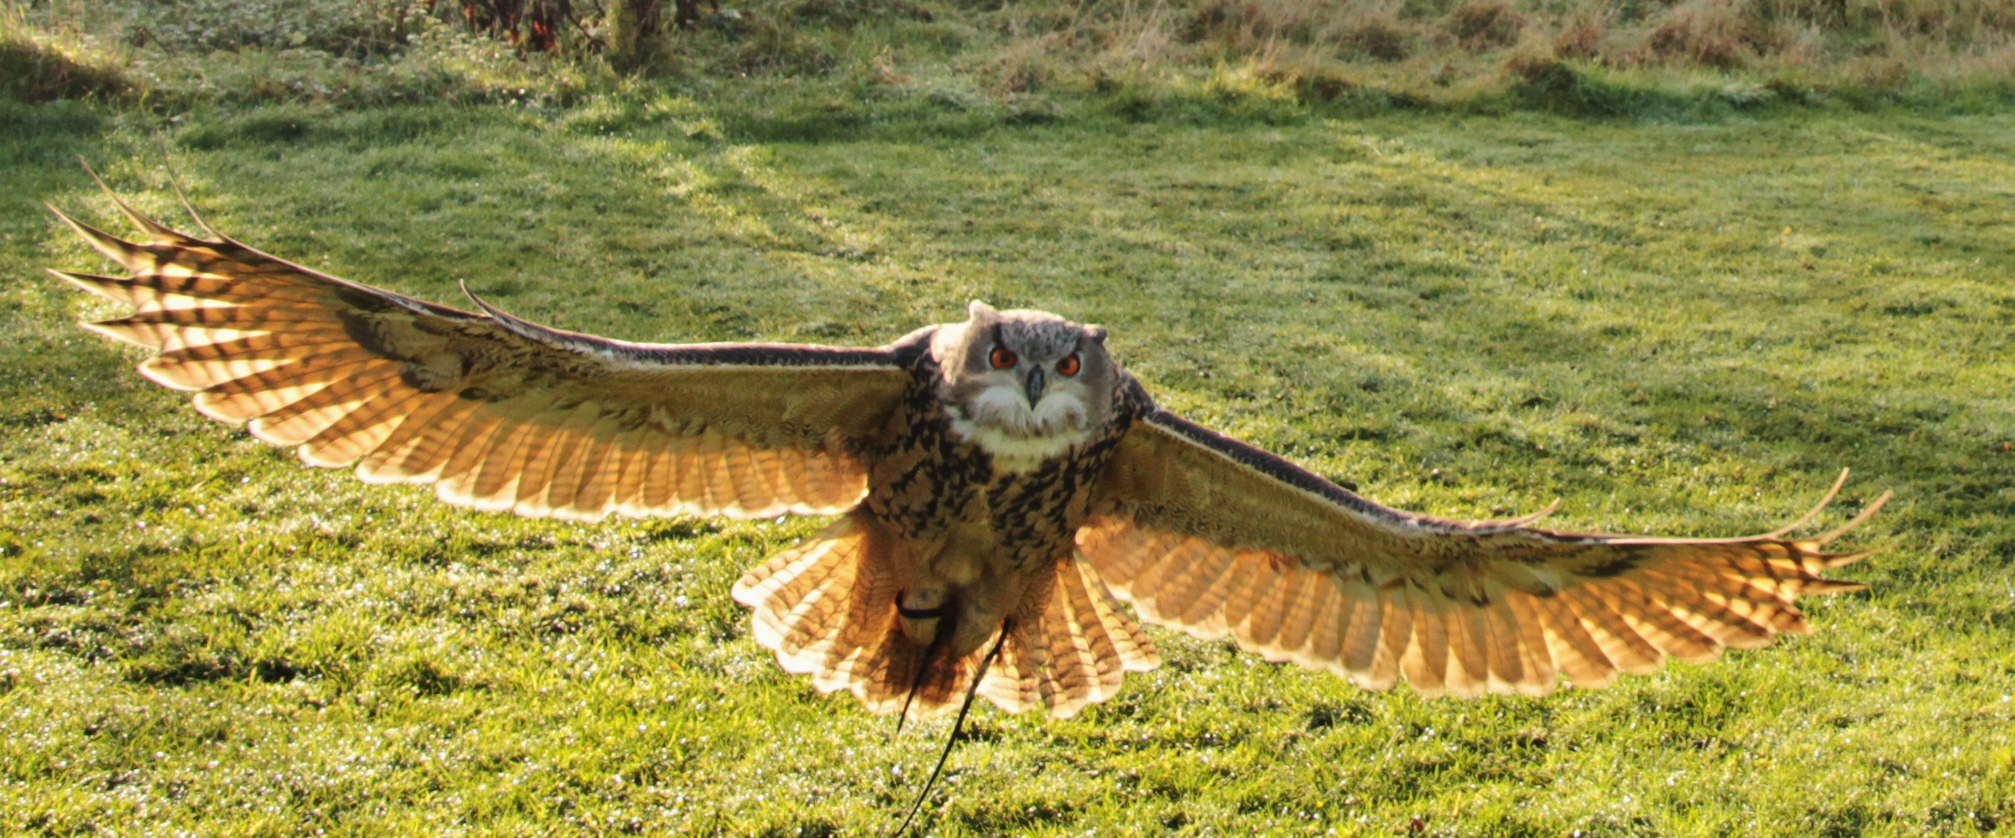 Taken whilst on a day out a falconry centre  near glen eagles in Scotland uk.